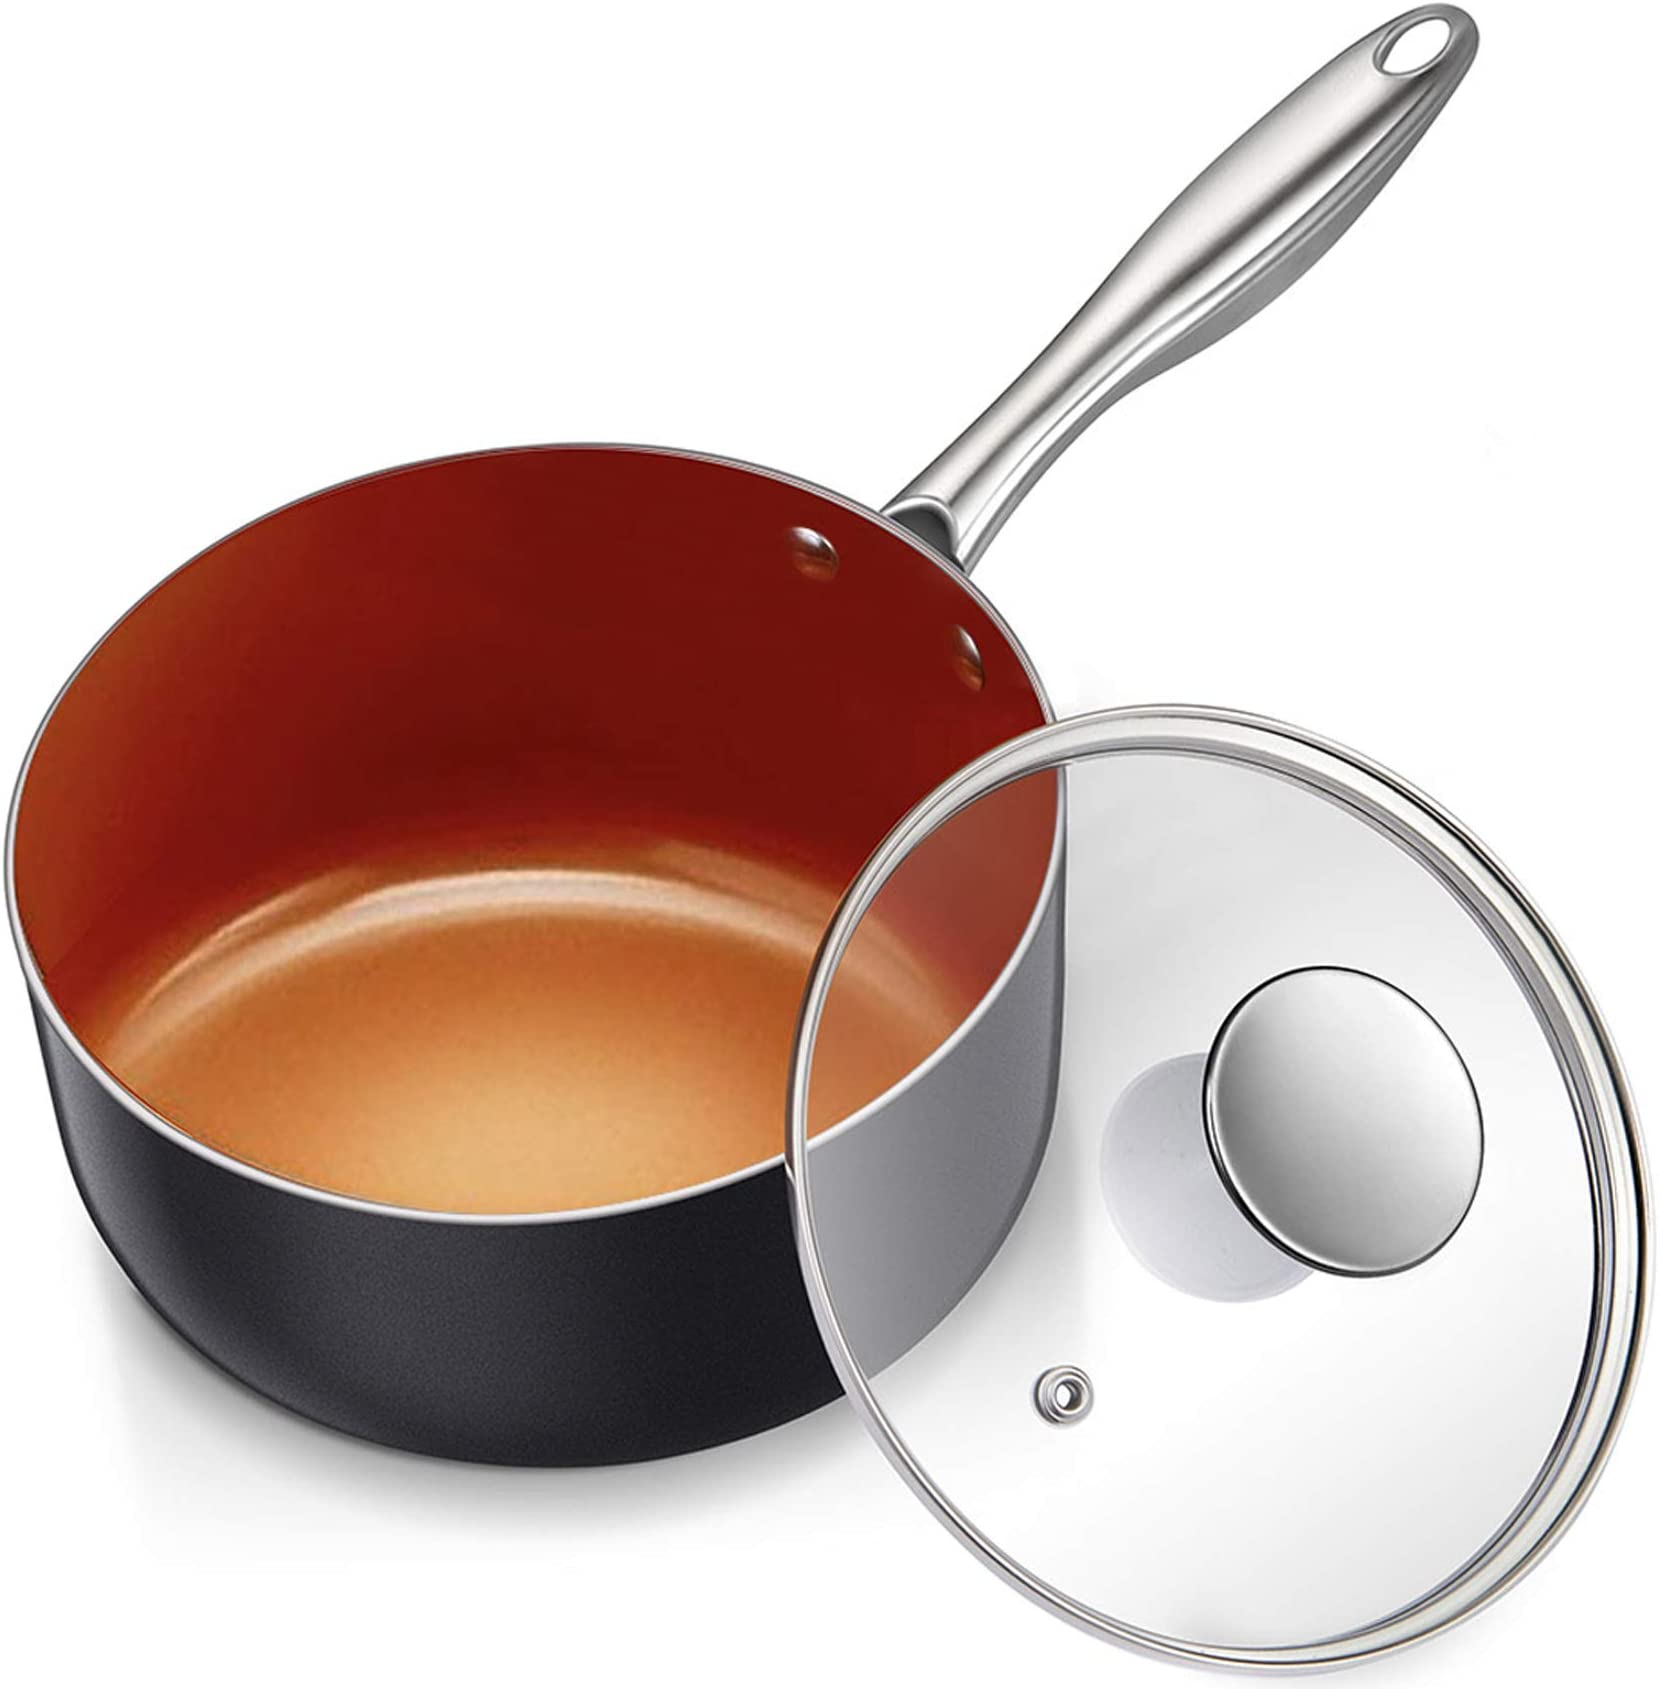 MICHELANGELO 3 Quart Saucepan with Lid, Ultra Nonstick Coppper Sauce Pan with Lid, Small Pot with Lid, Ceramic Nonstick Saucepan 3 quart, Small Sauce Pot, Copper Pot 3 Qt, Ceramic Sauce Pan 3 Quart…